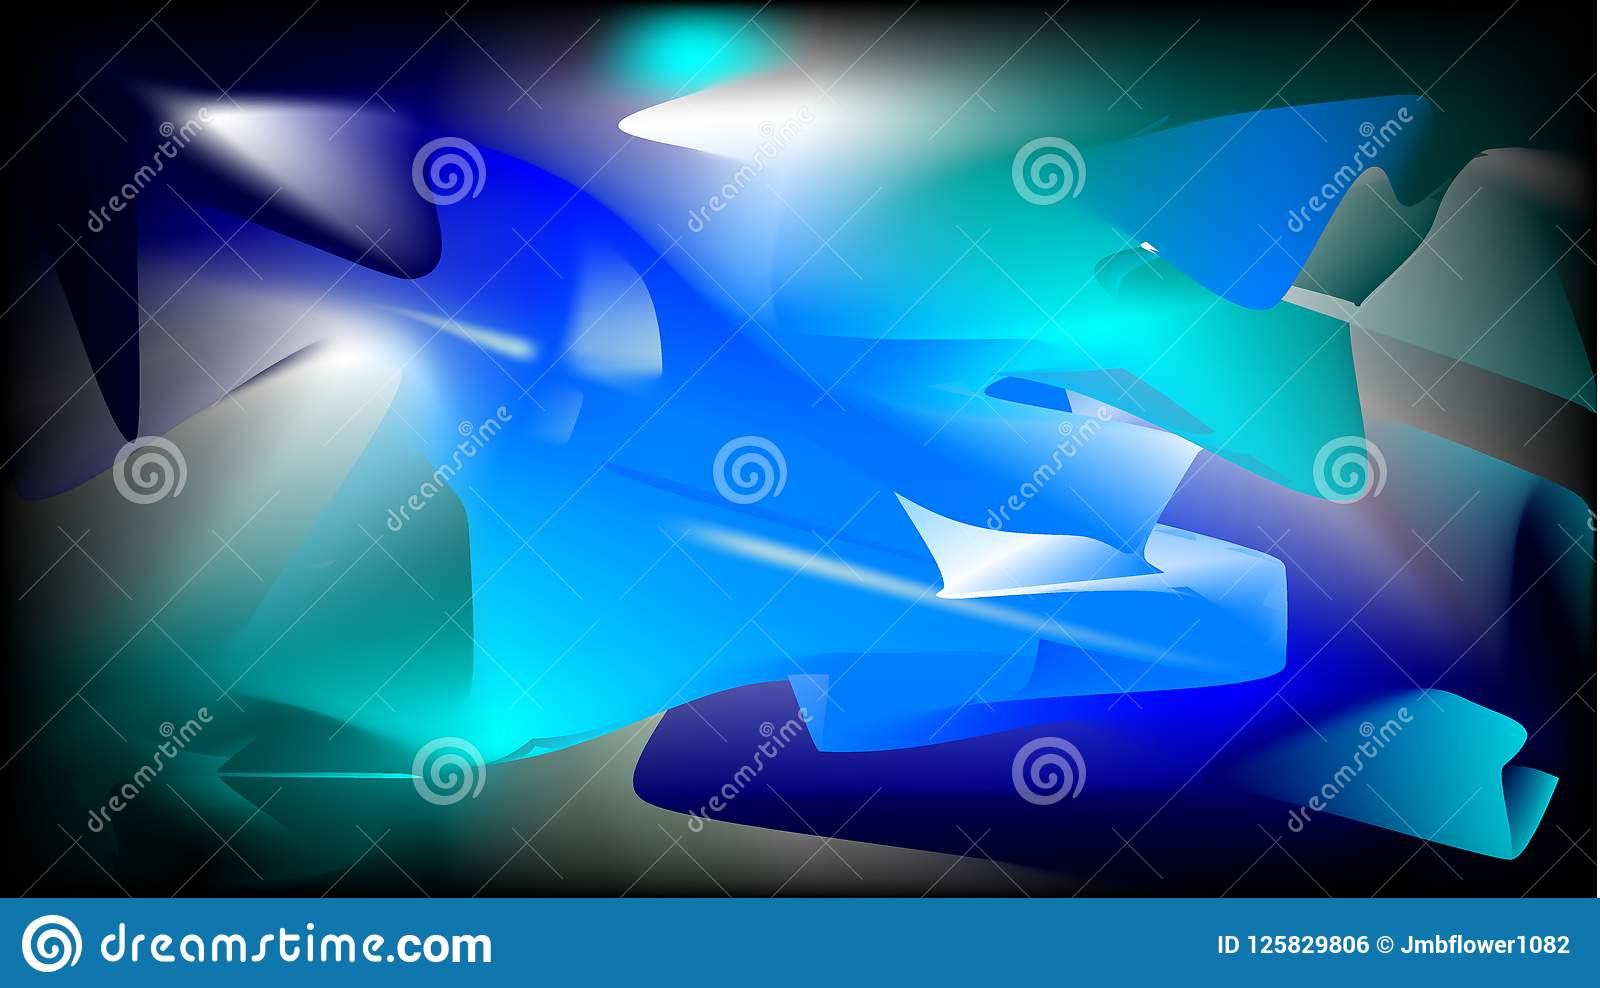 Baby Blue Aqua Black White And Navy Blue Abstract Vector